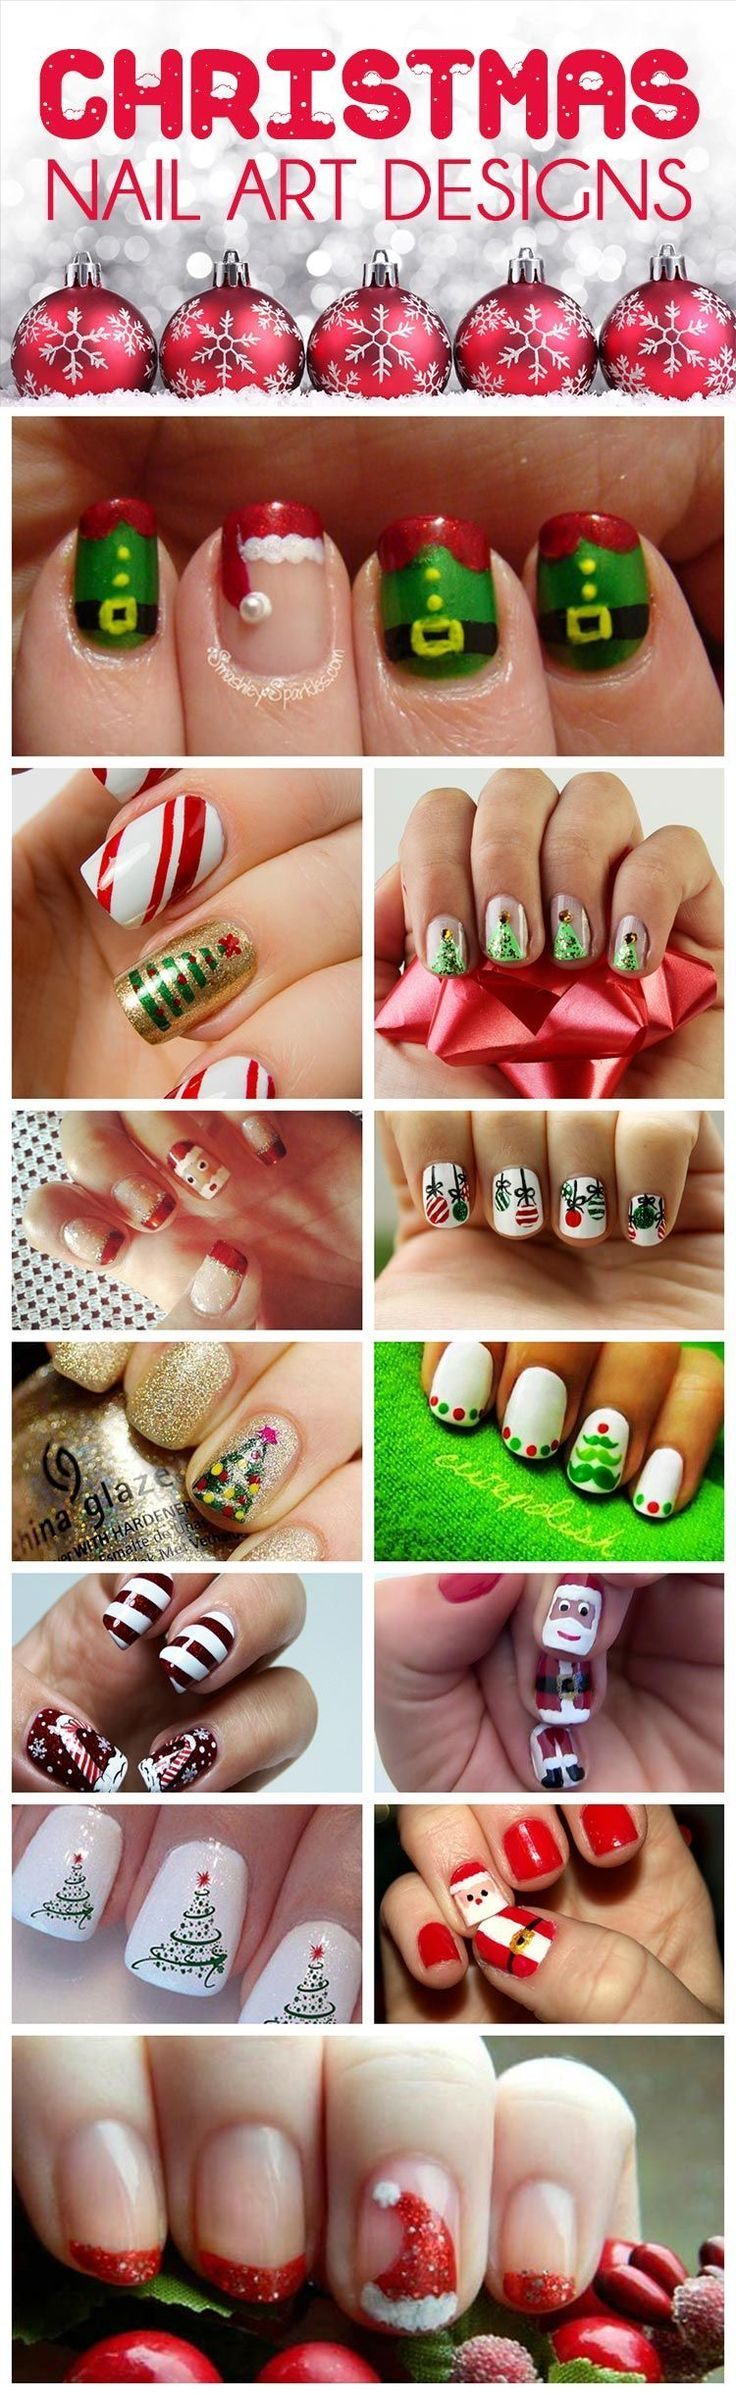 9 best Uñas de navidad images on Pinterest | Christmas nails, Xmas ...